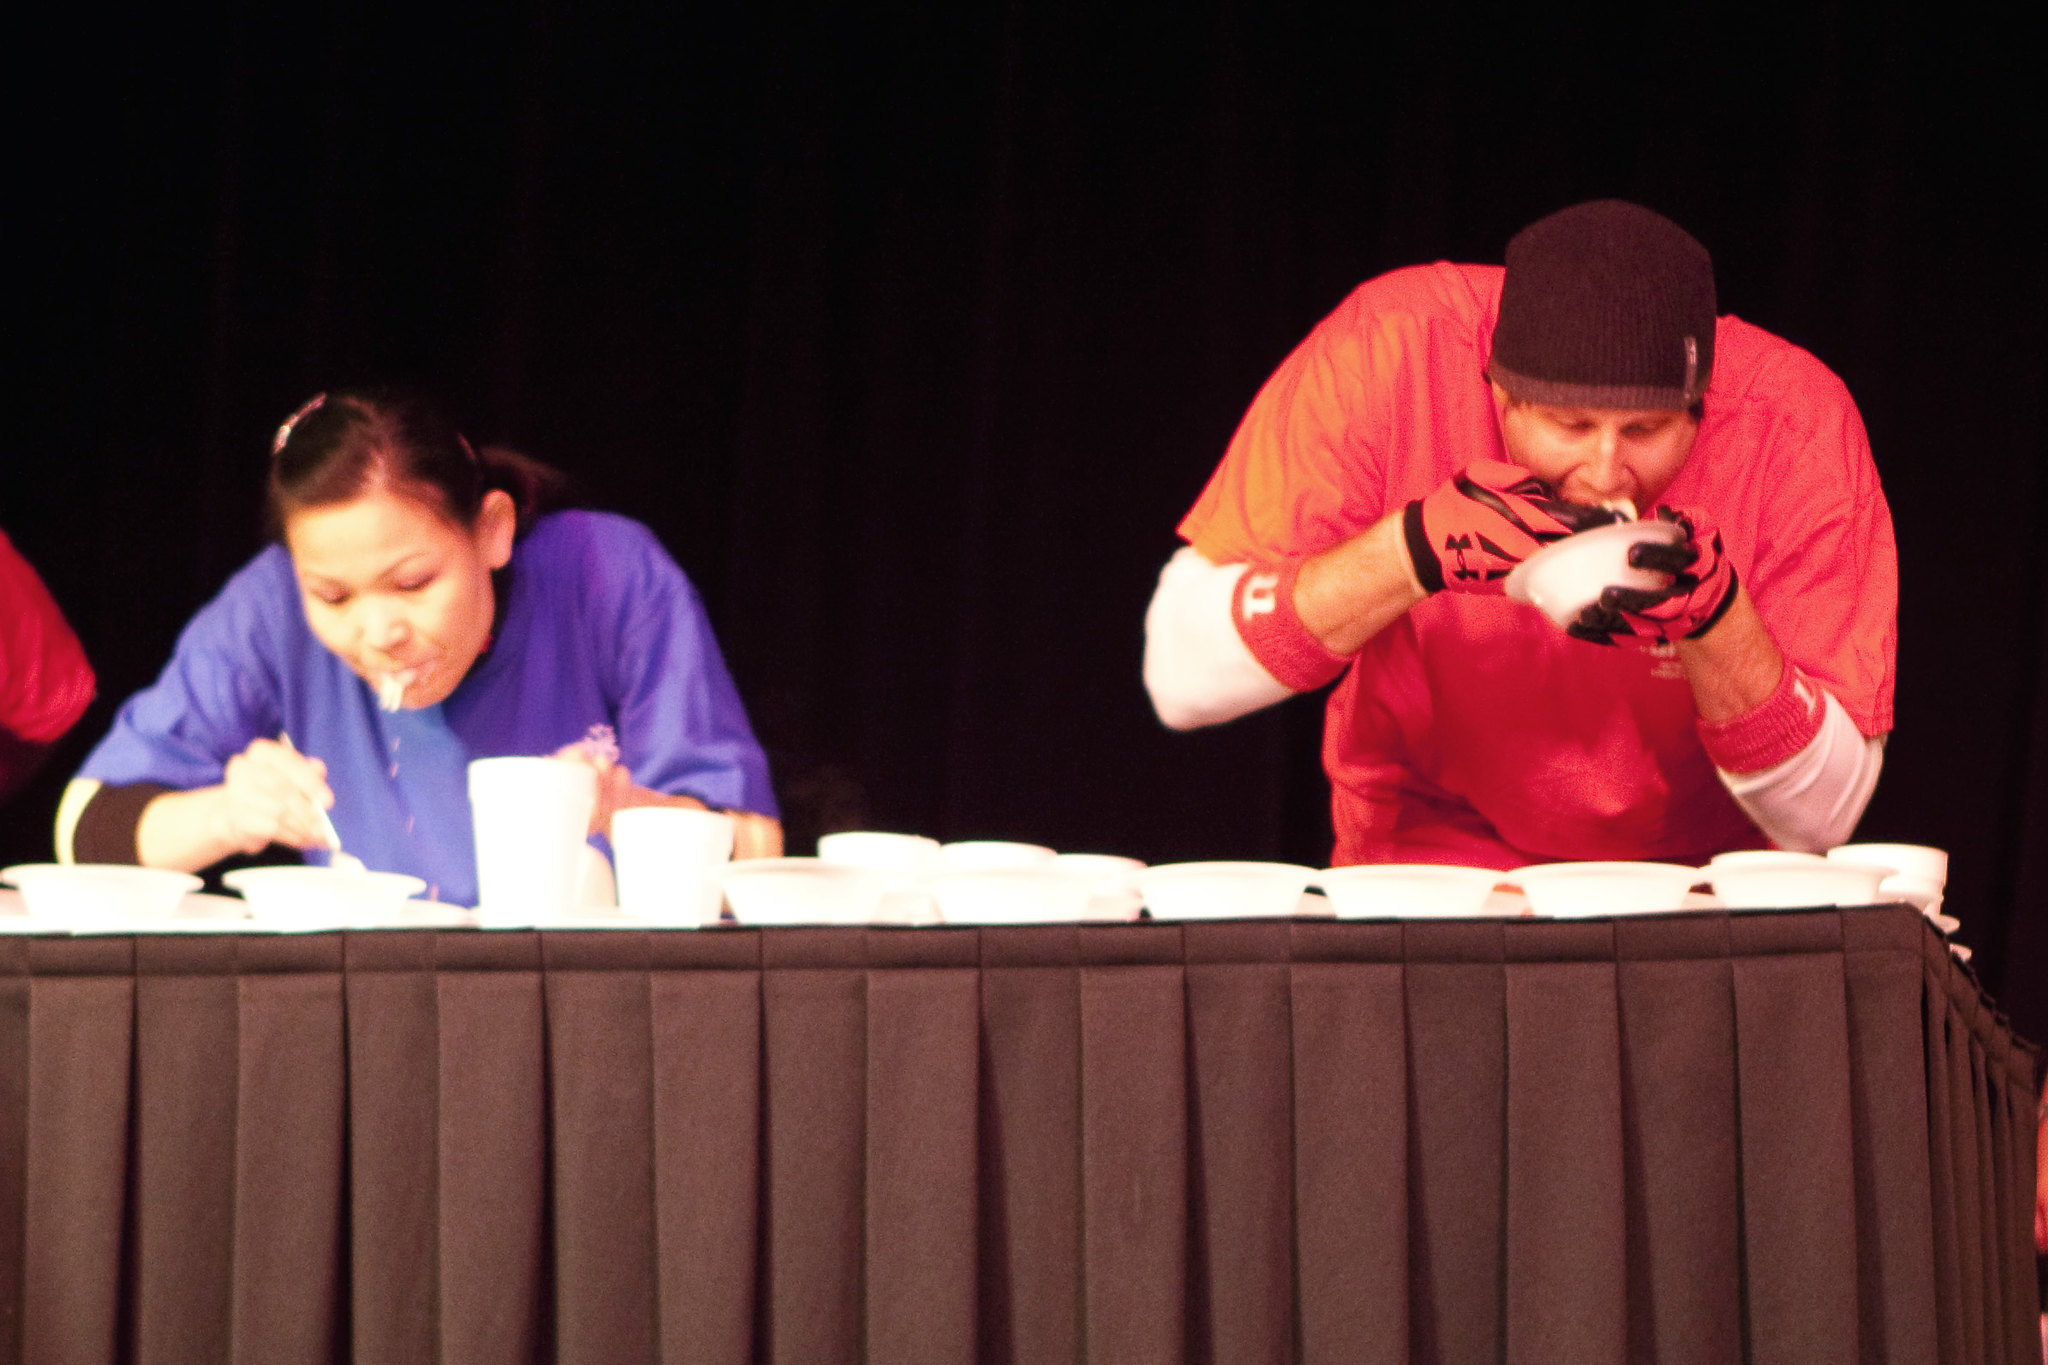 Sonya Thomas and Erik Denmark eat at the Ice Cream Eating Contest at Harrah's Casino in Metropolis, Illinois.